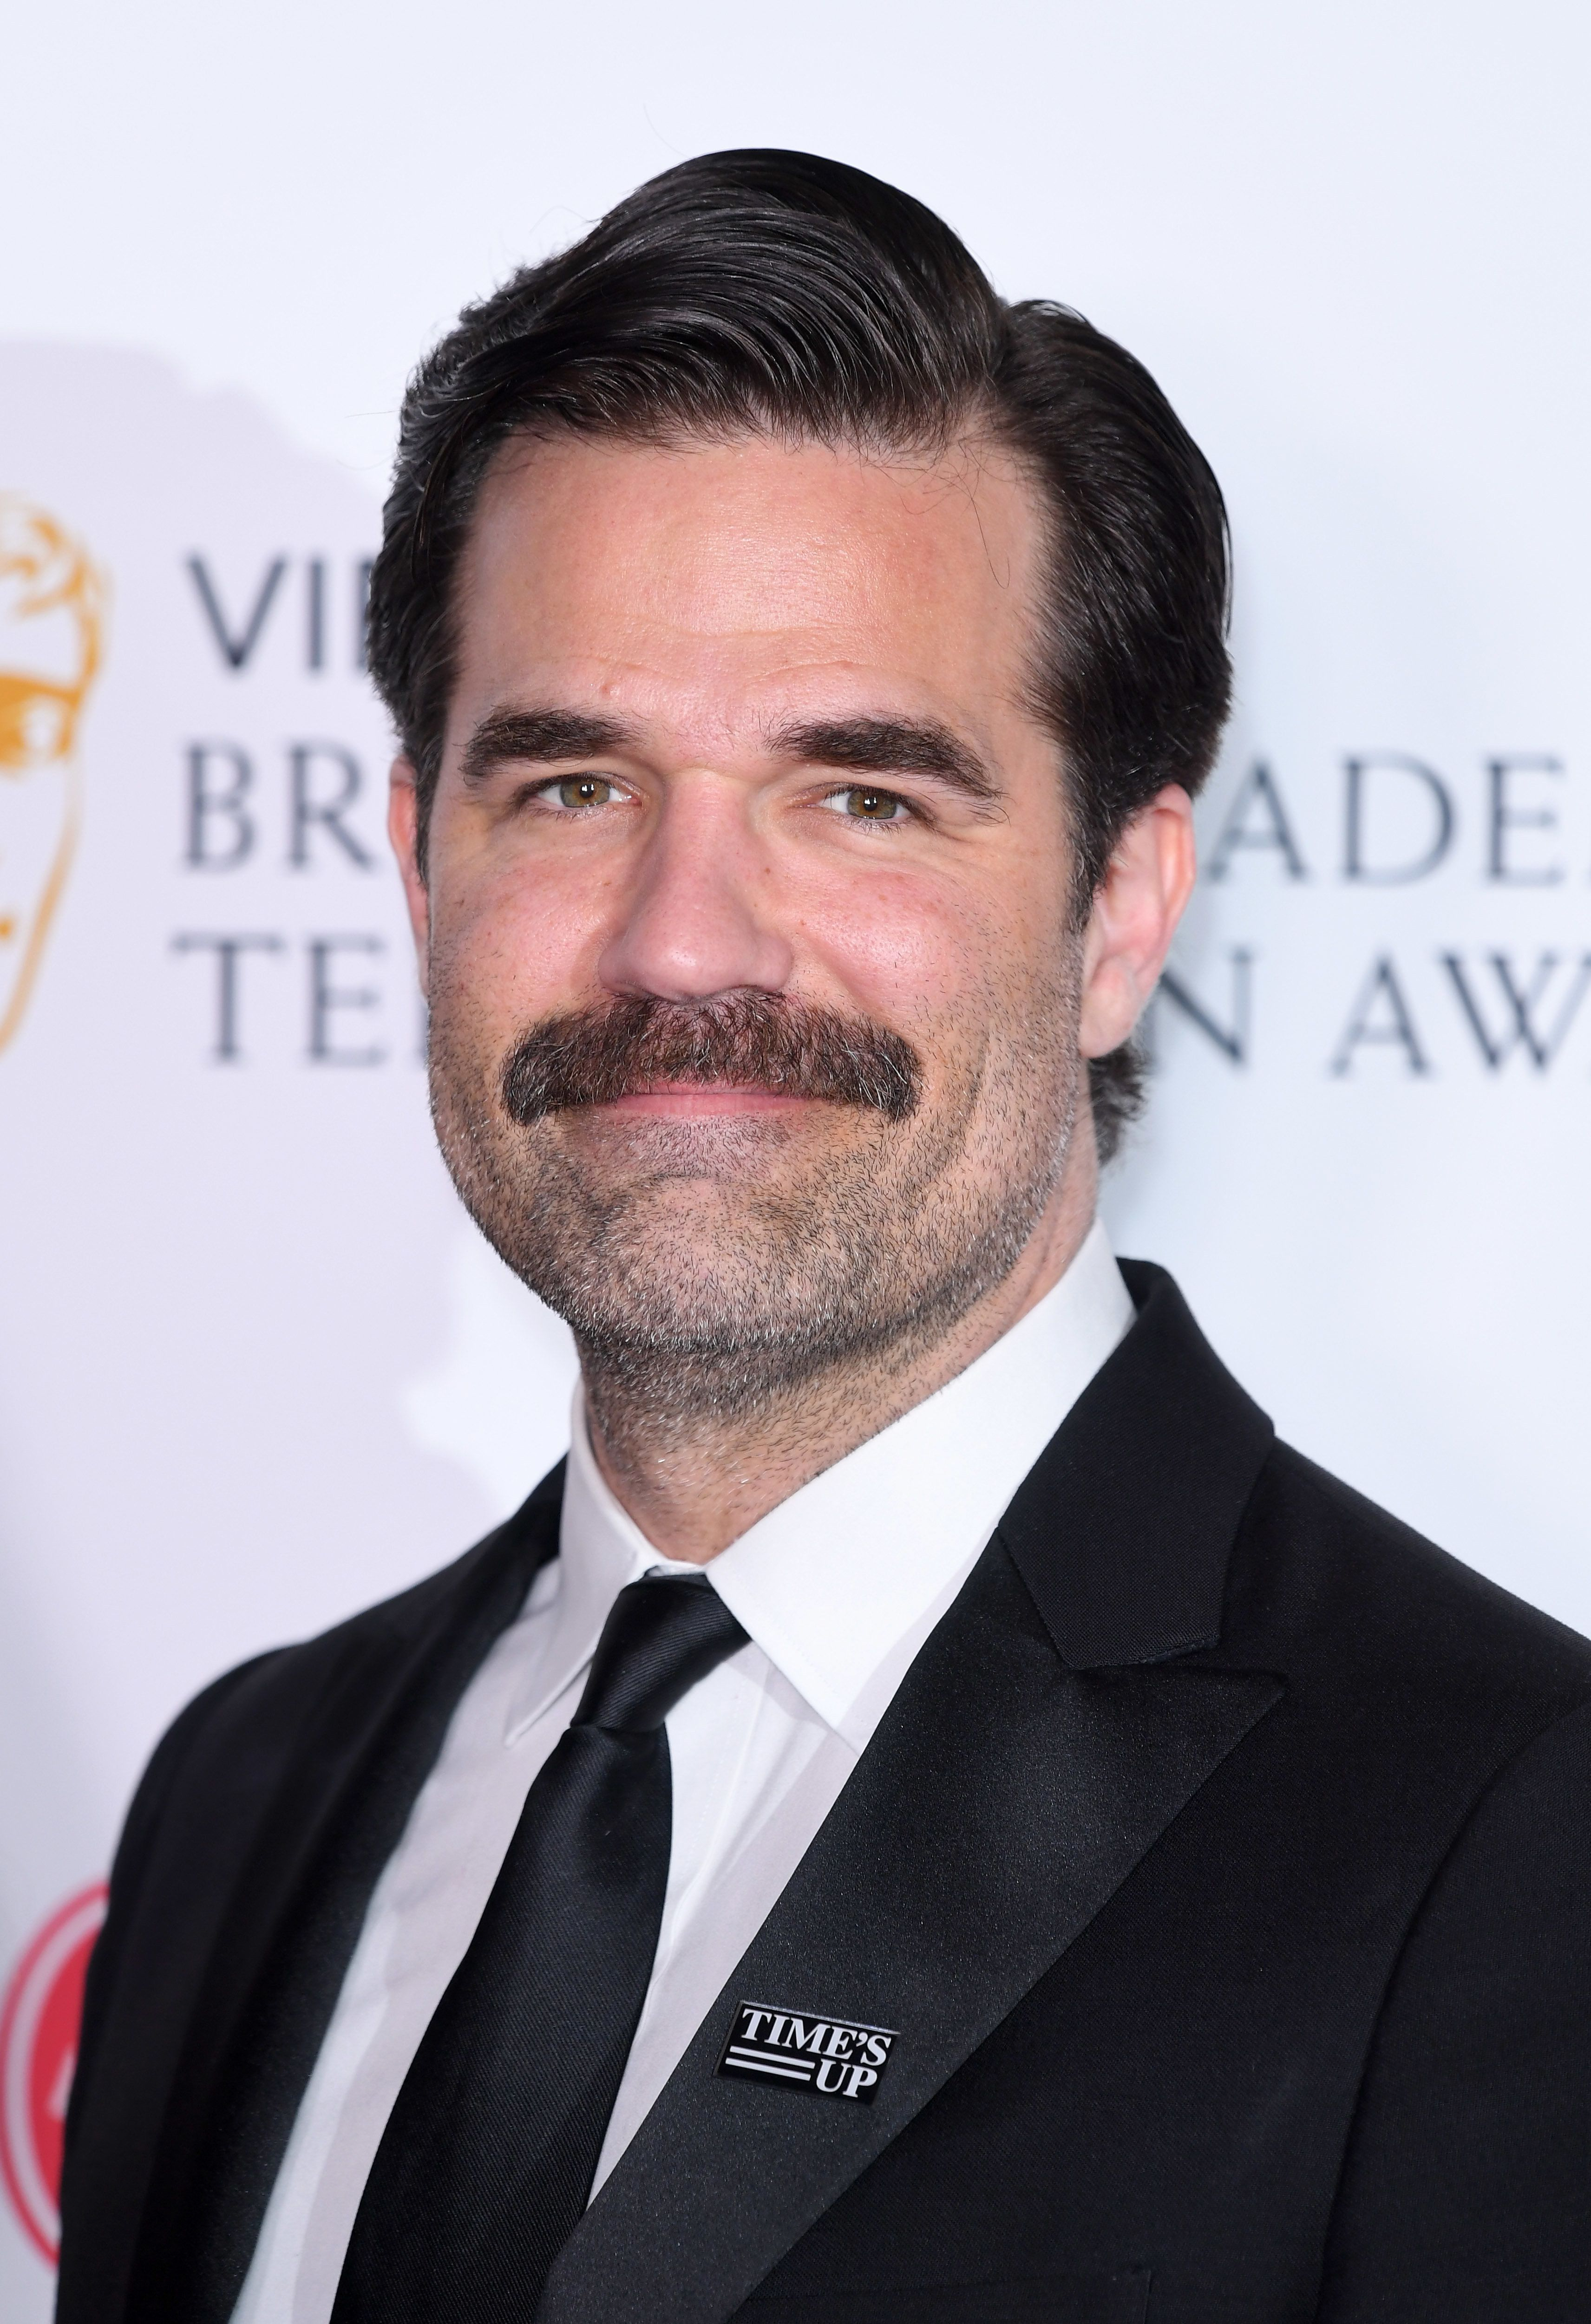 'I Hope This Helps': Rob Delaney Pens Emotional Essay For Parents Of Sick Children After Son Henry's